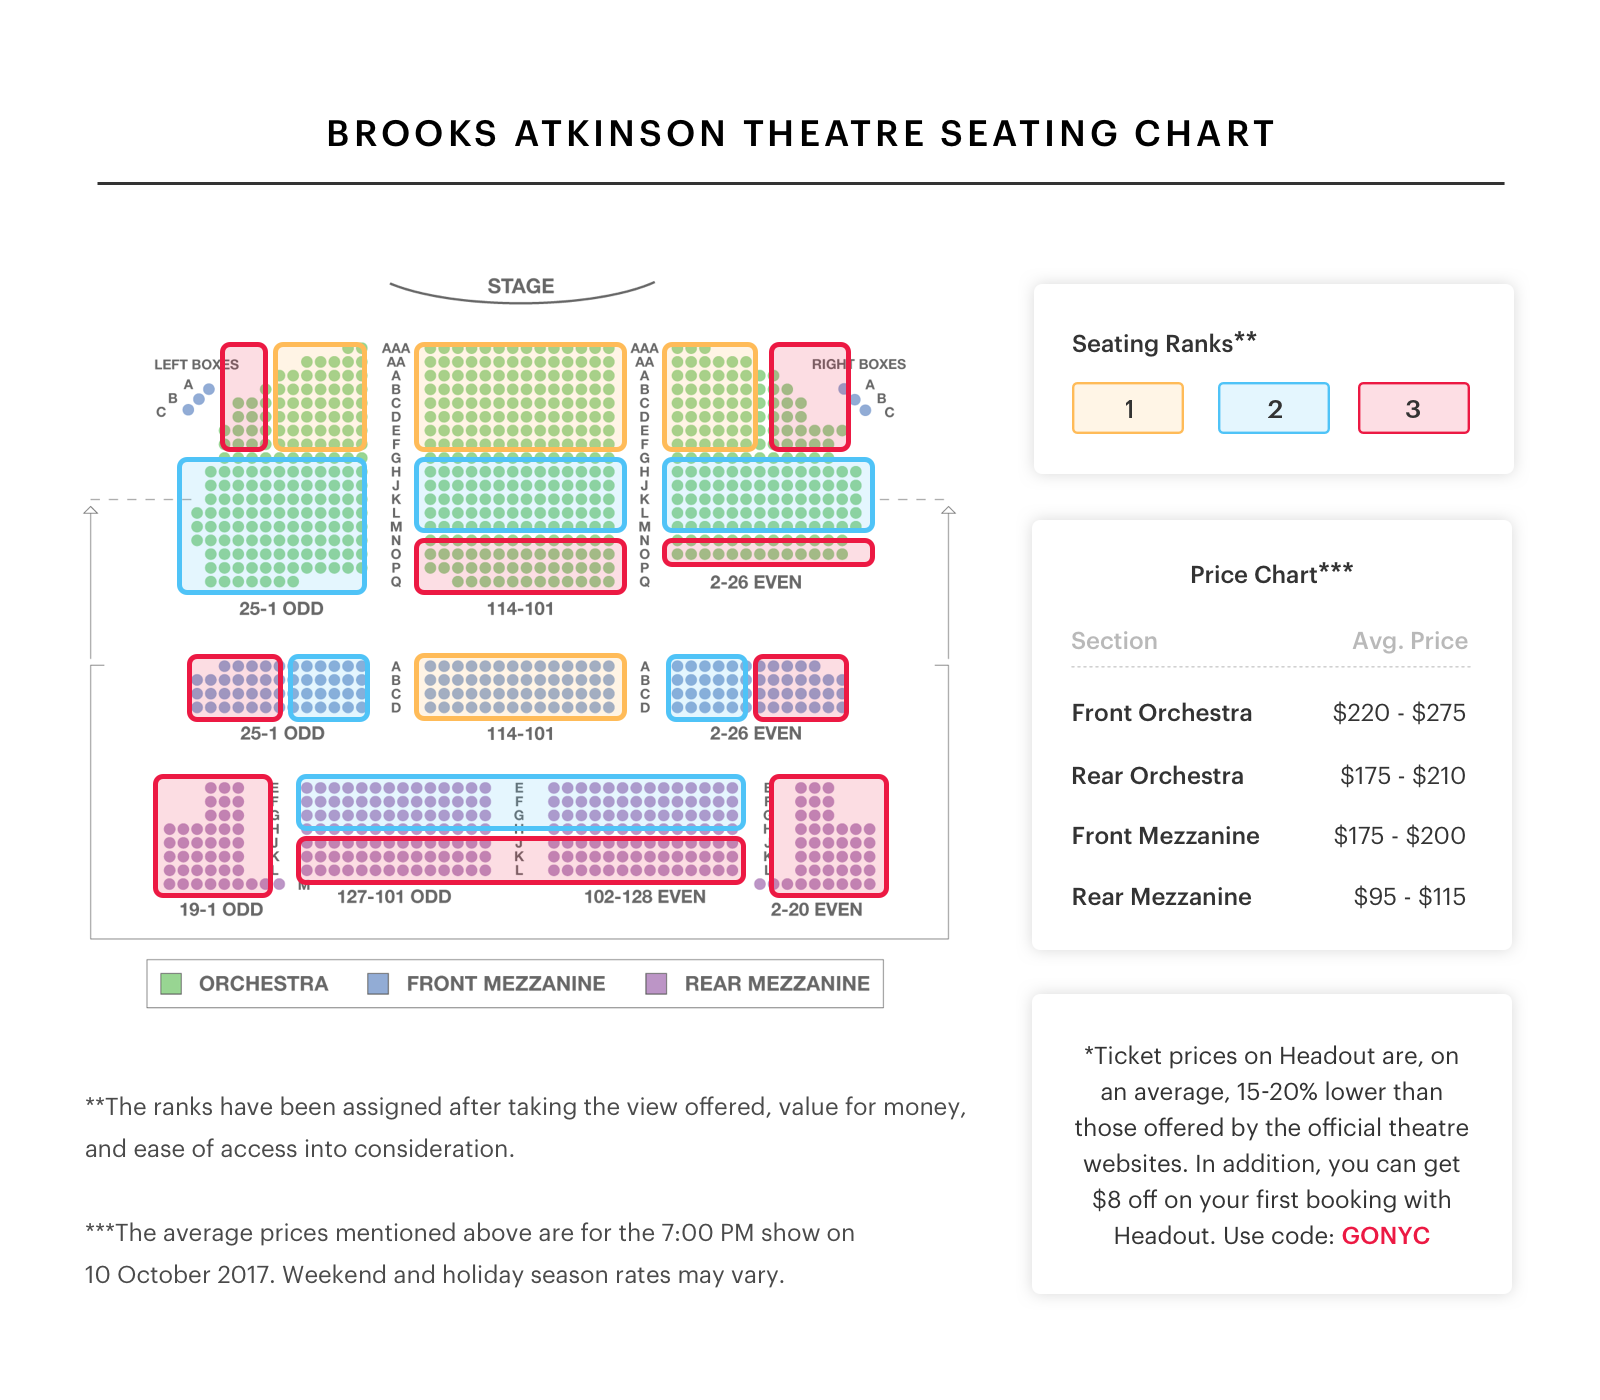 stephen sondheim theatre seating chart best seats pro tips and